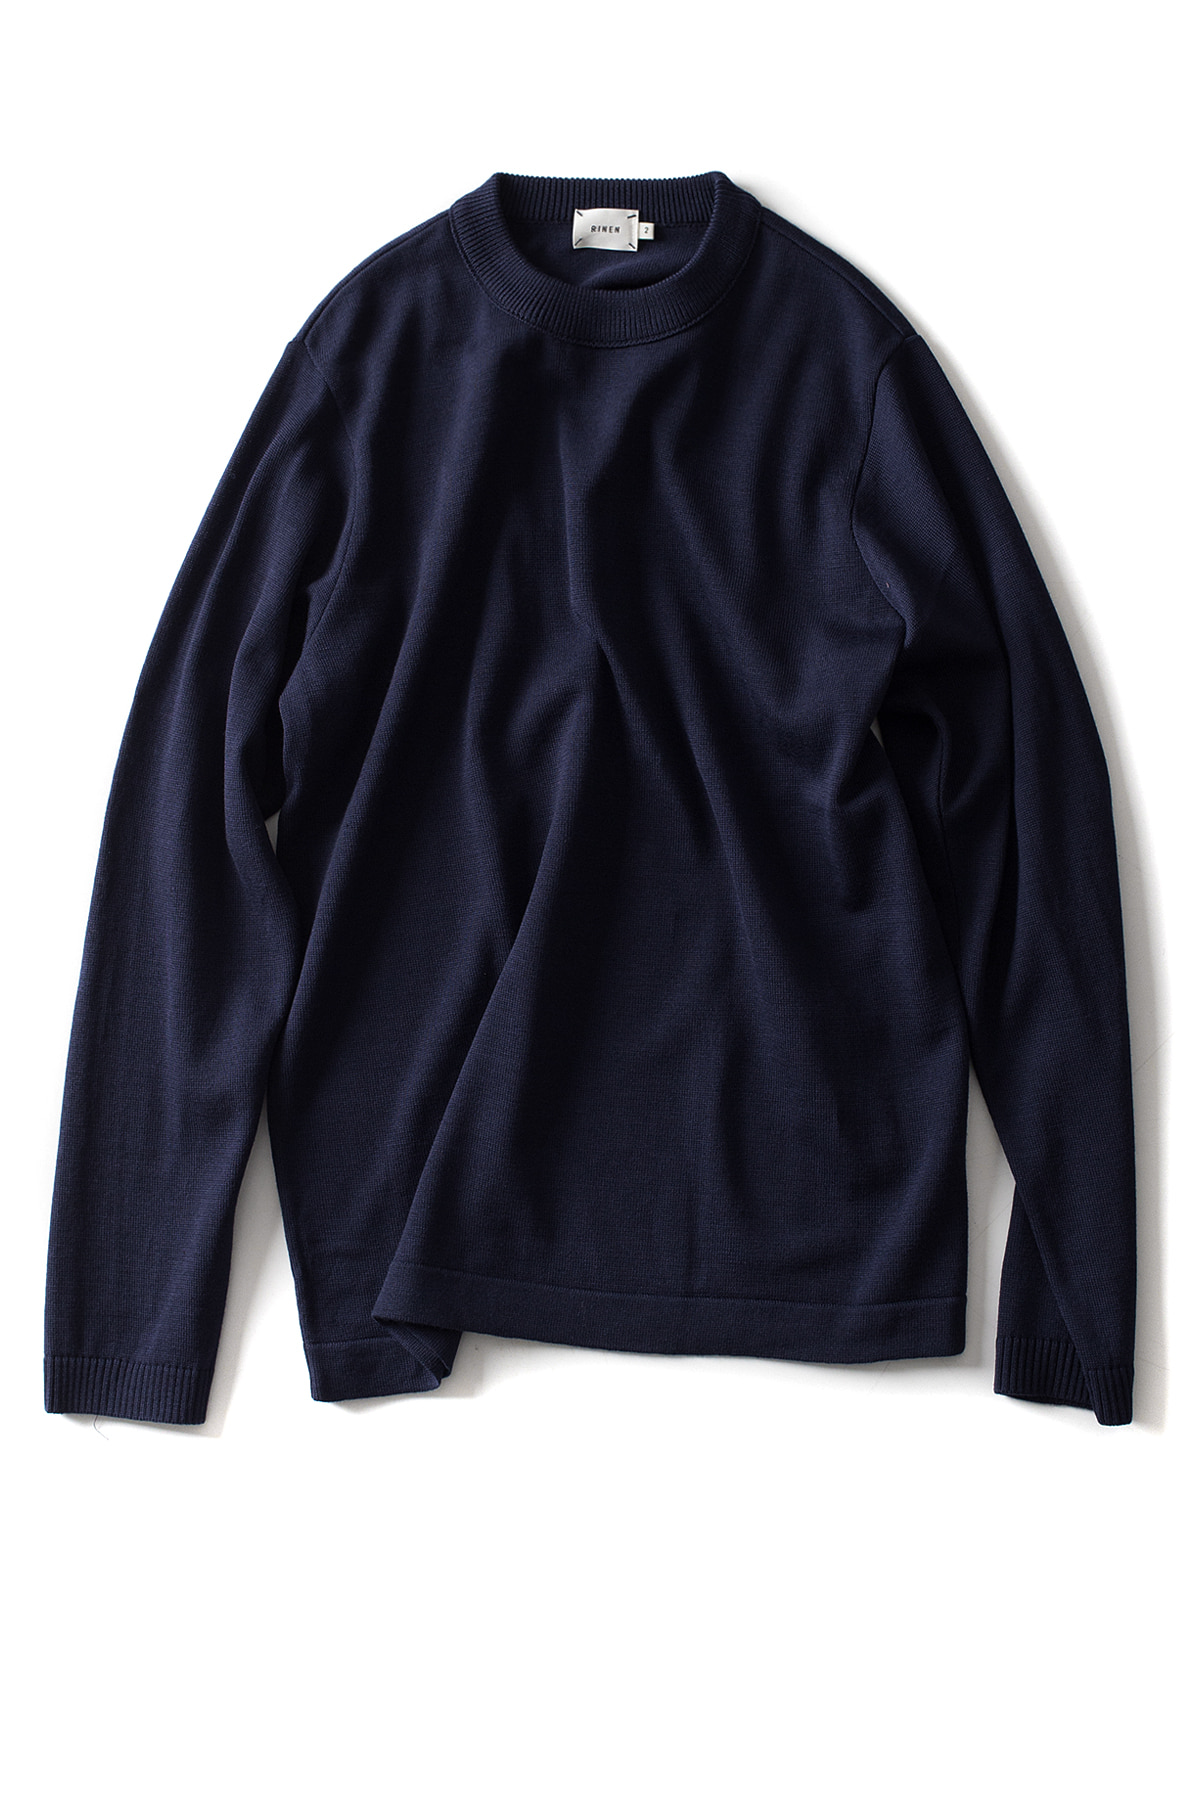 RINEN : Wool Crewneck (Navy)